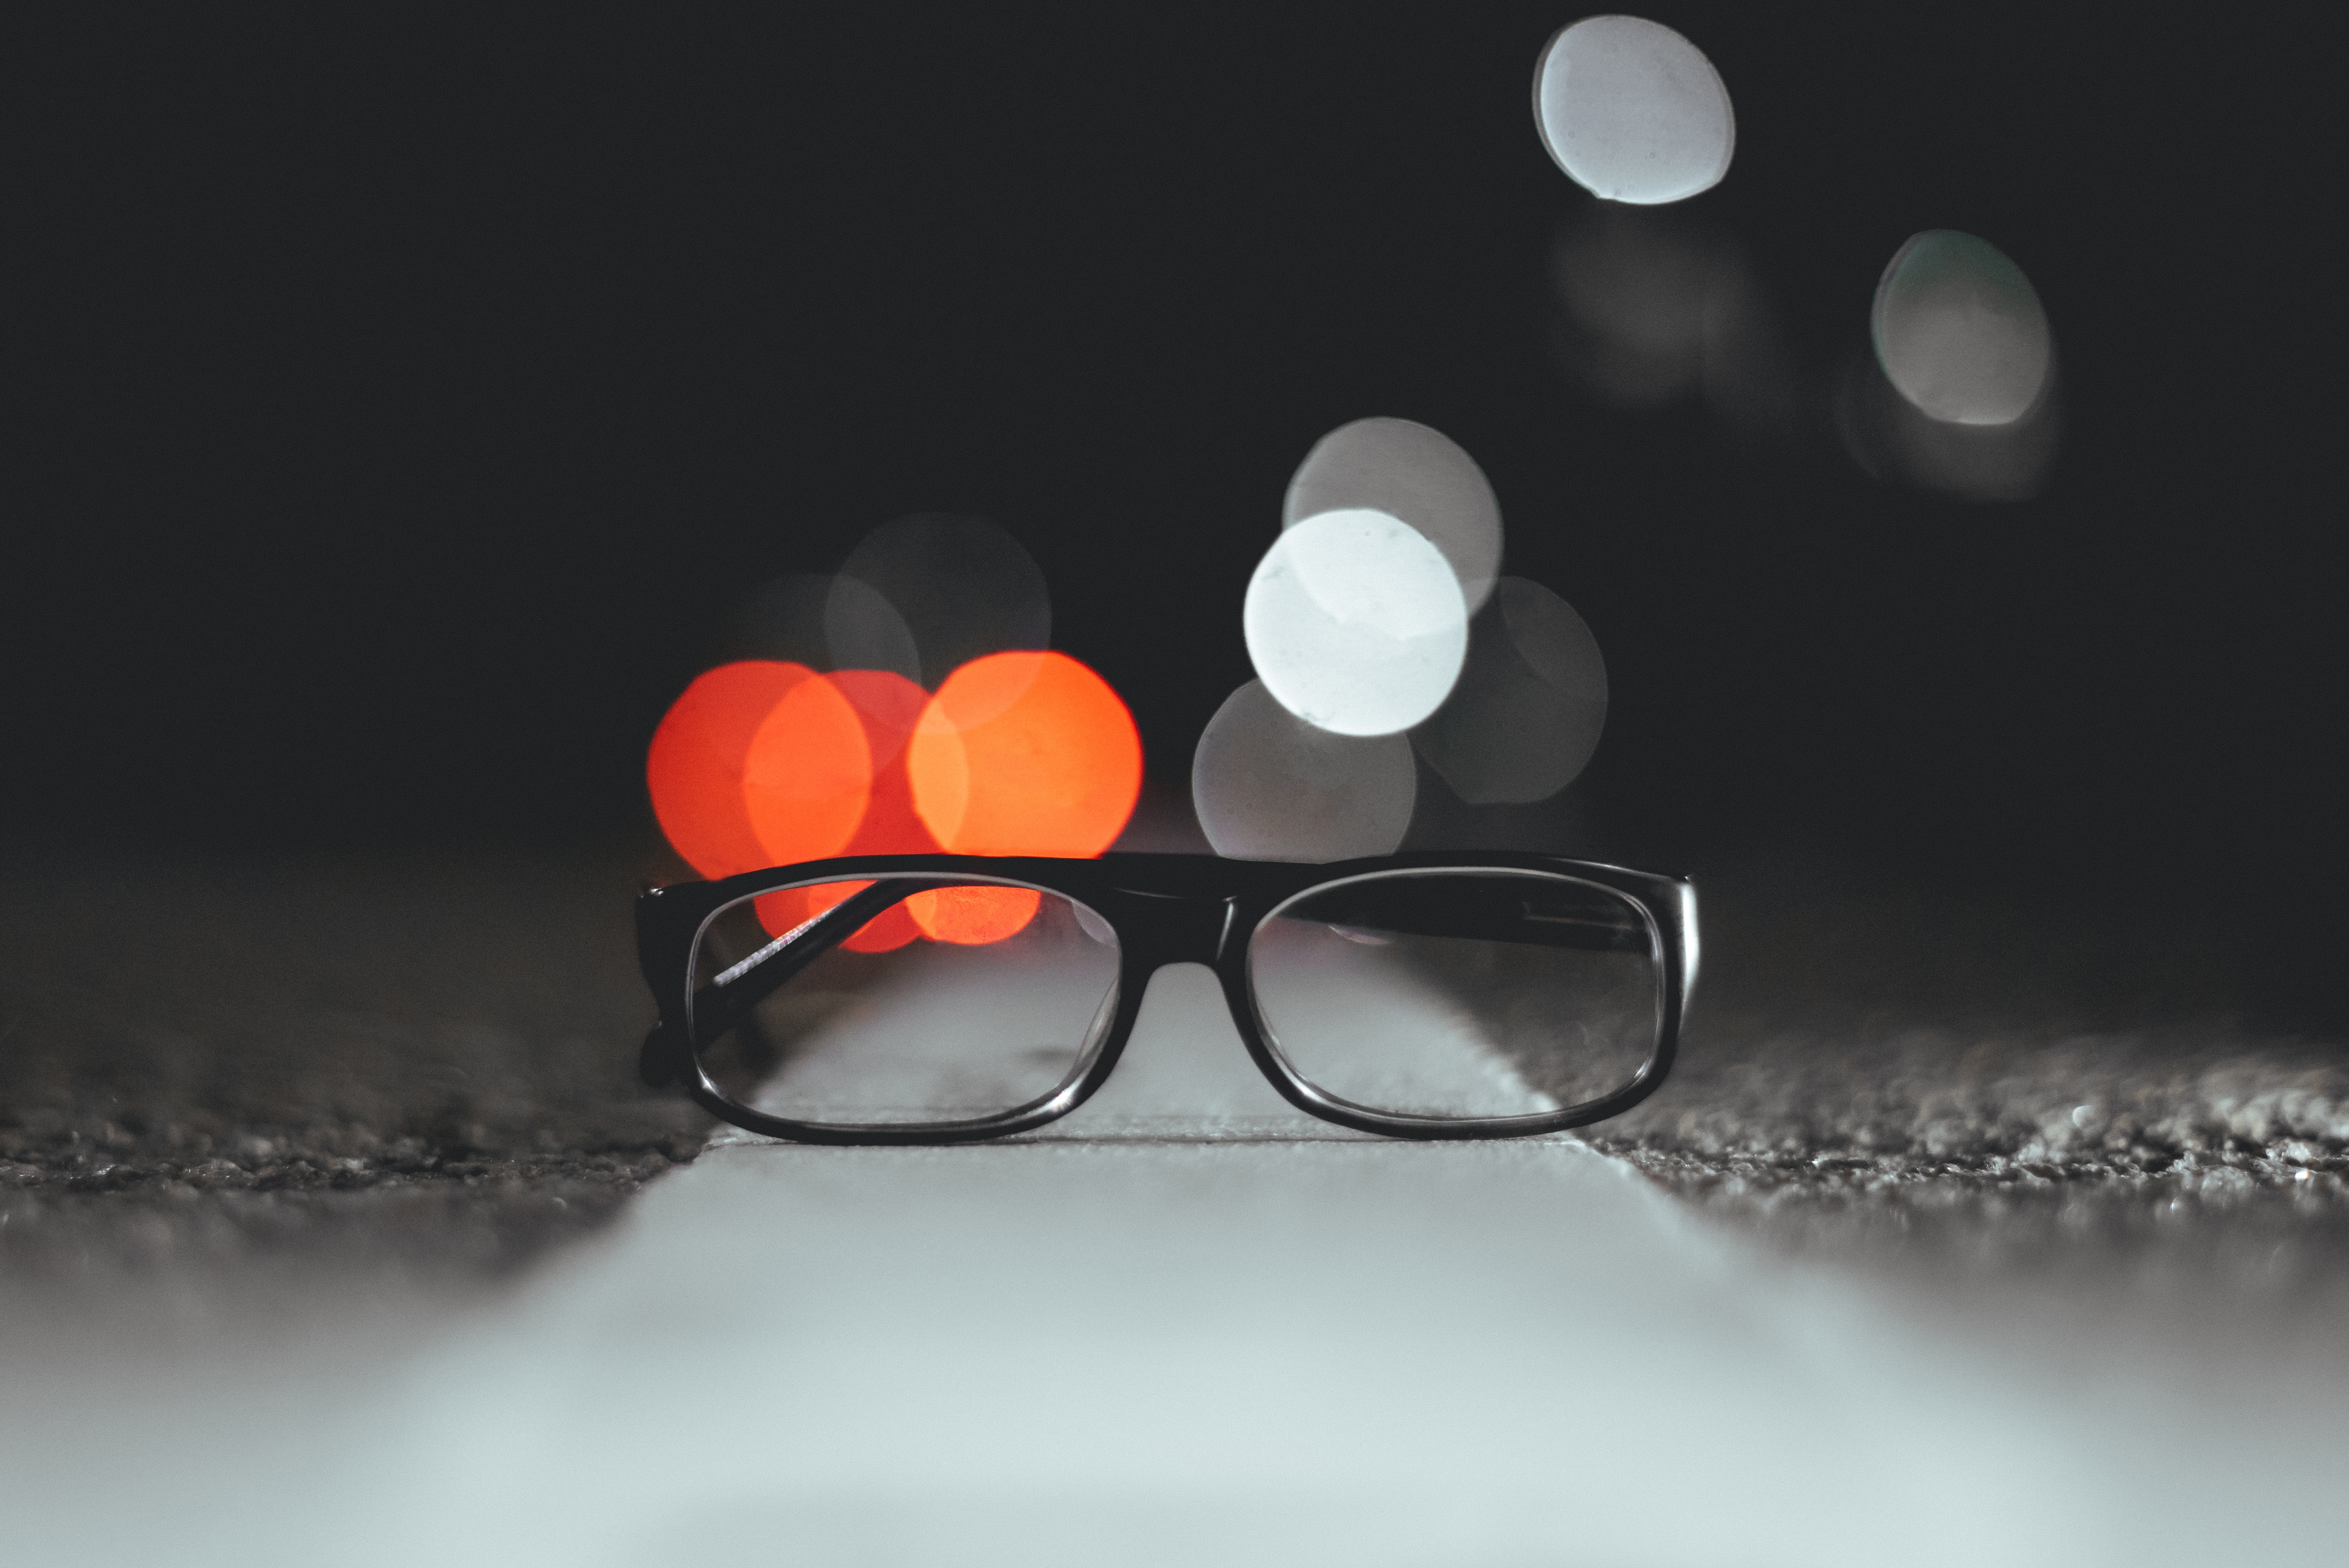 59107 download wallpaper Miscellanea, Miscellaneous, Glasses, Spectacles, Glare, Shine, Light screensavers and pictures for free